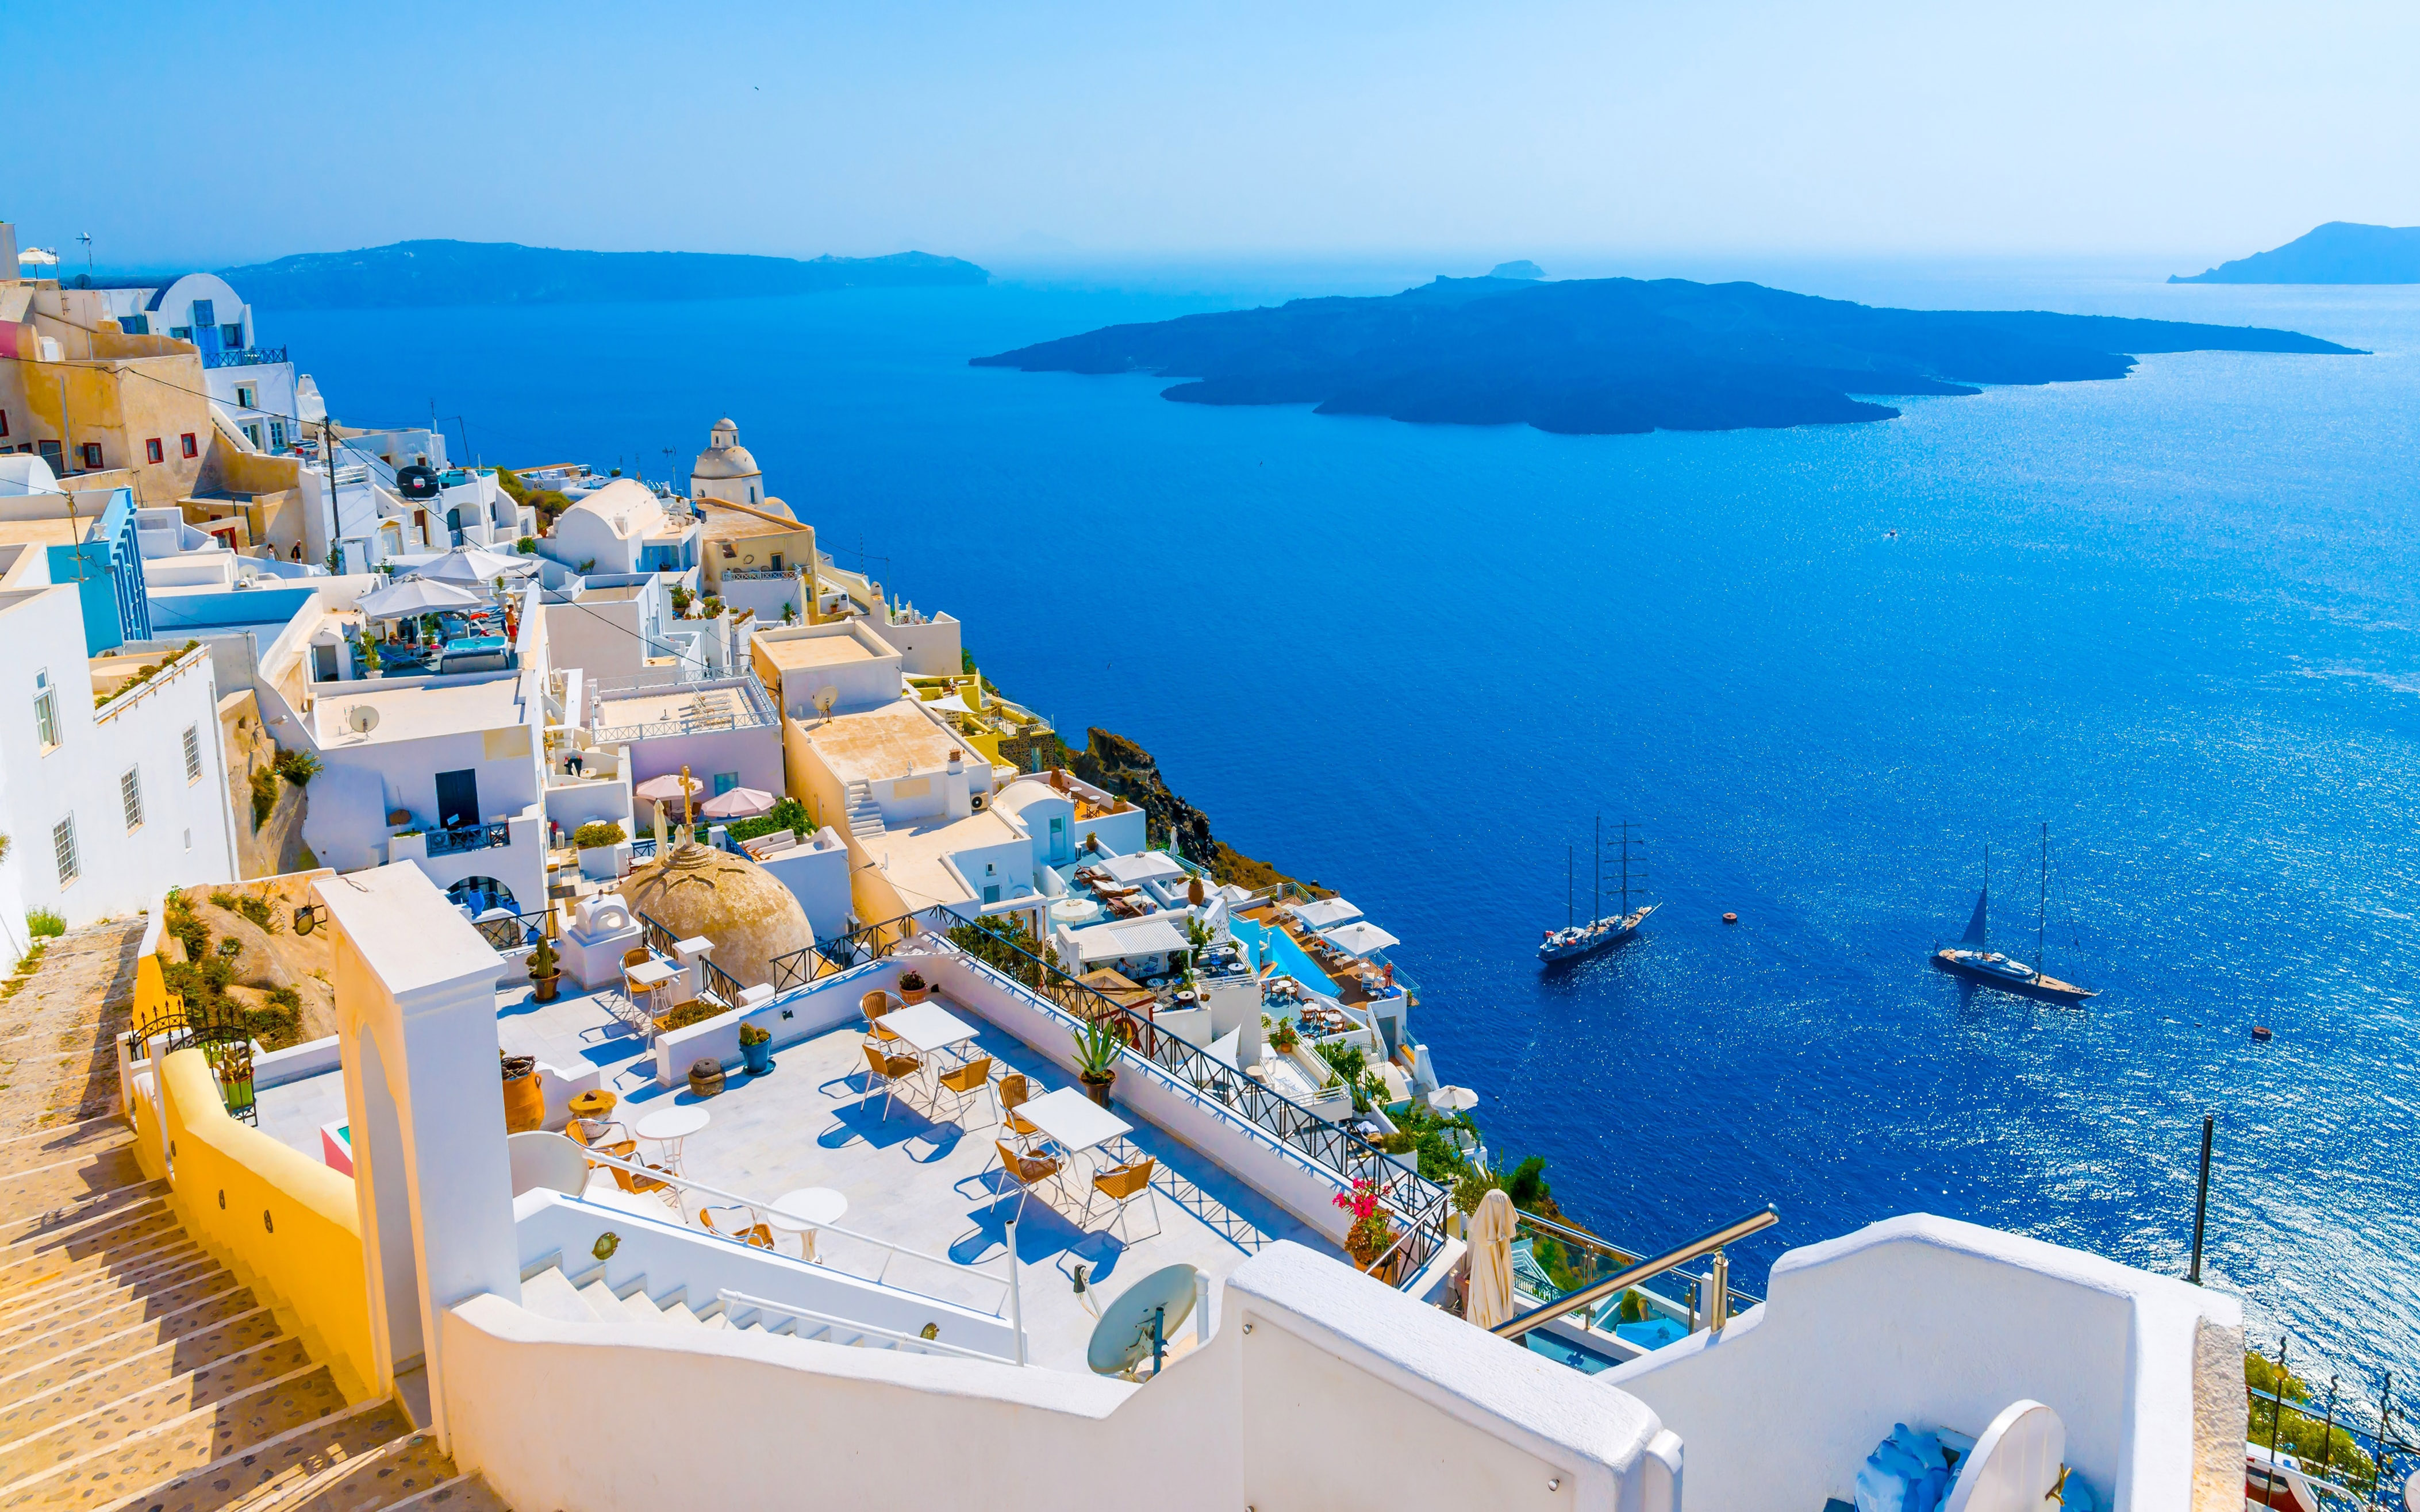 Santorini Island In Greece White Architecture Blue Sea Beautiful 4210x2631